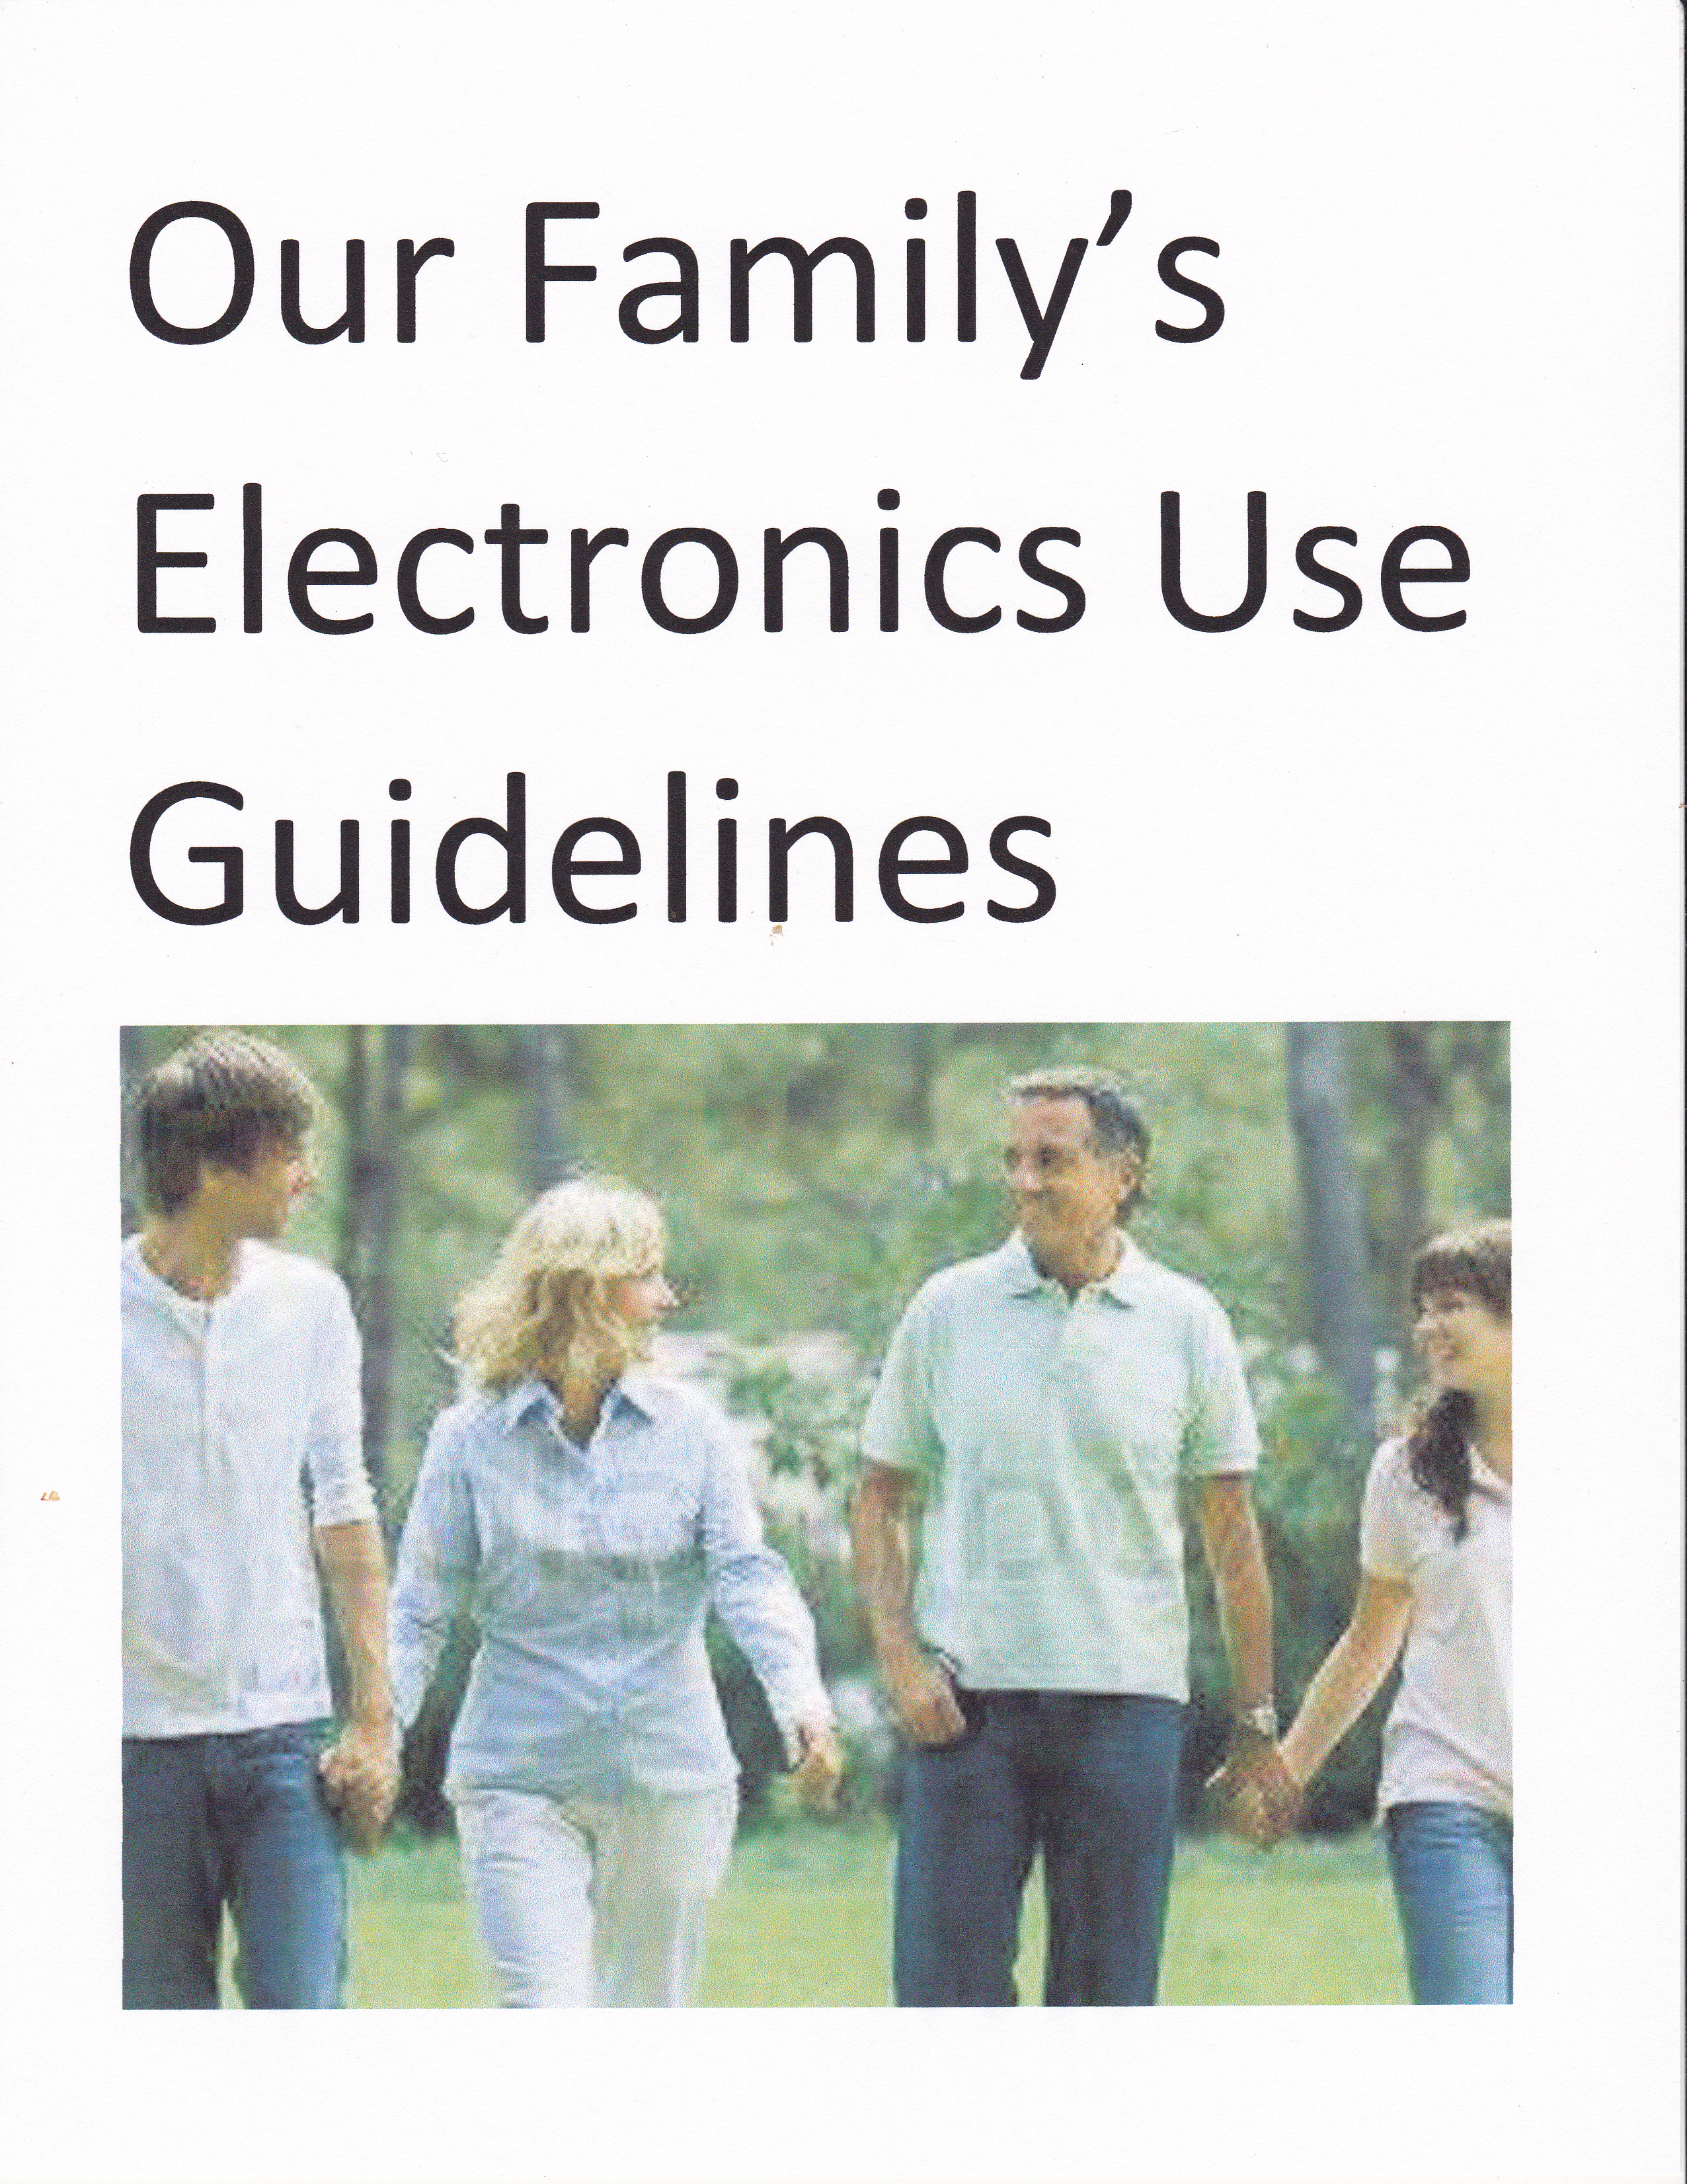 How to Set Your Family's Electronics Use Guidelines